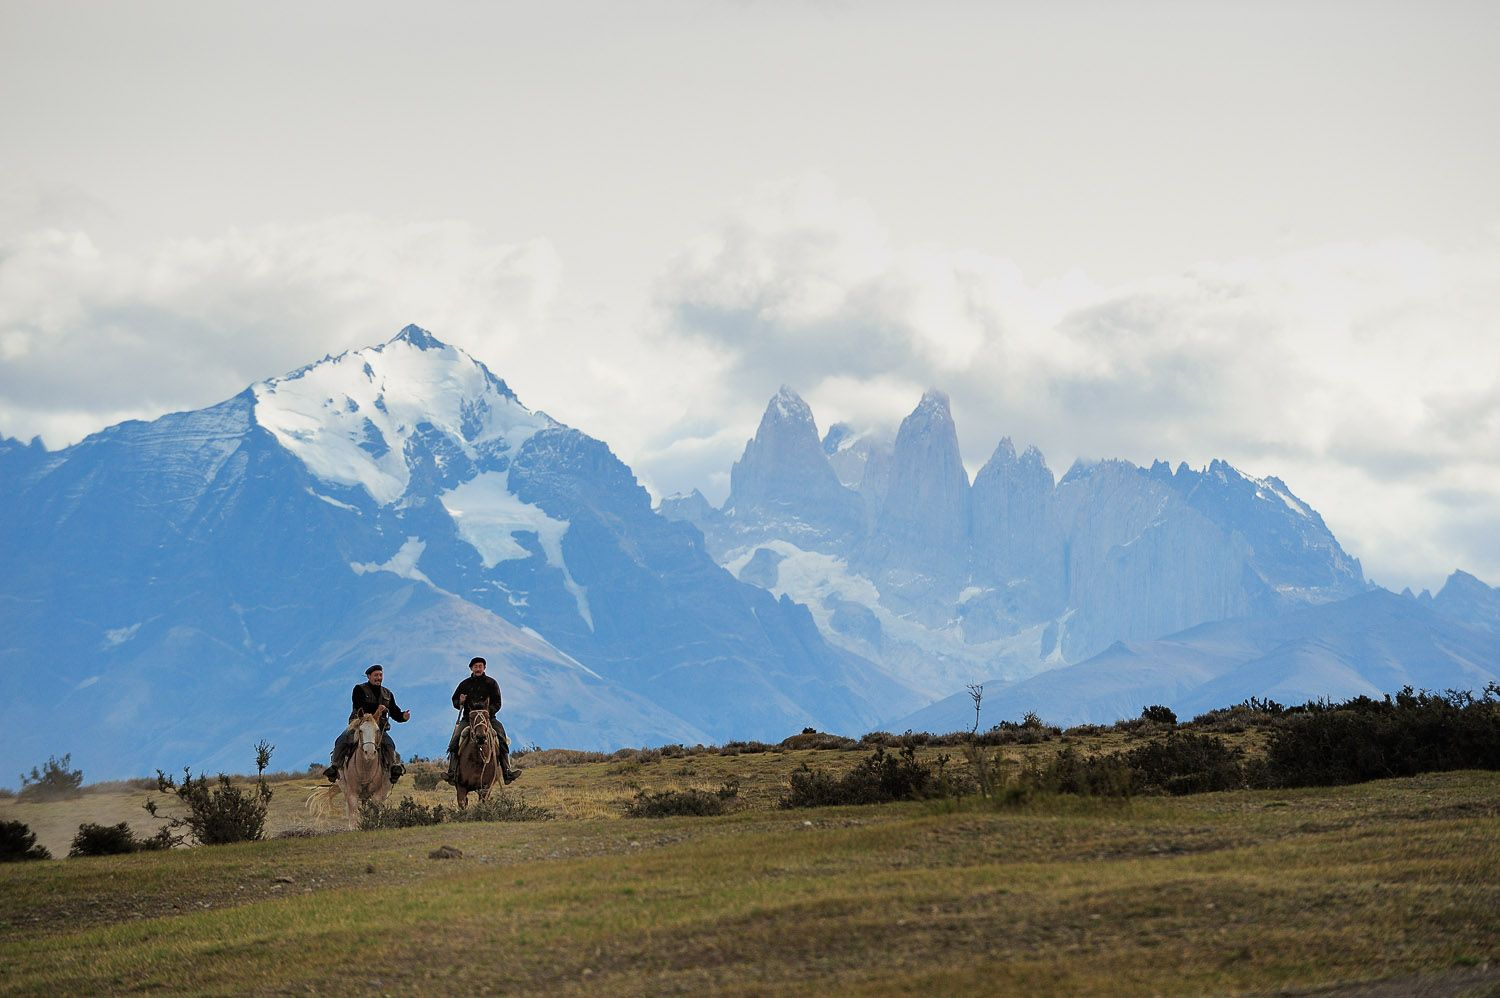 With impressive views of the little-known Sierra Baguales, 1920s décor, and the therapeutic emptiness of the Patagonian pampa, guests come here to escape, unwind, and experience a feeling of freedom thanks to adventurous horse rides with their friendly handlers.        - ELLE.com